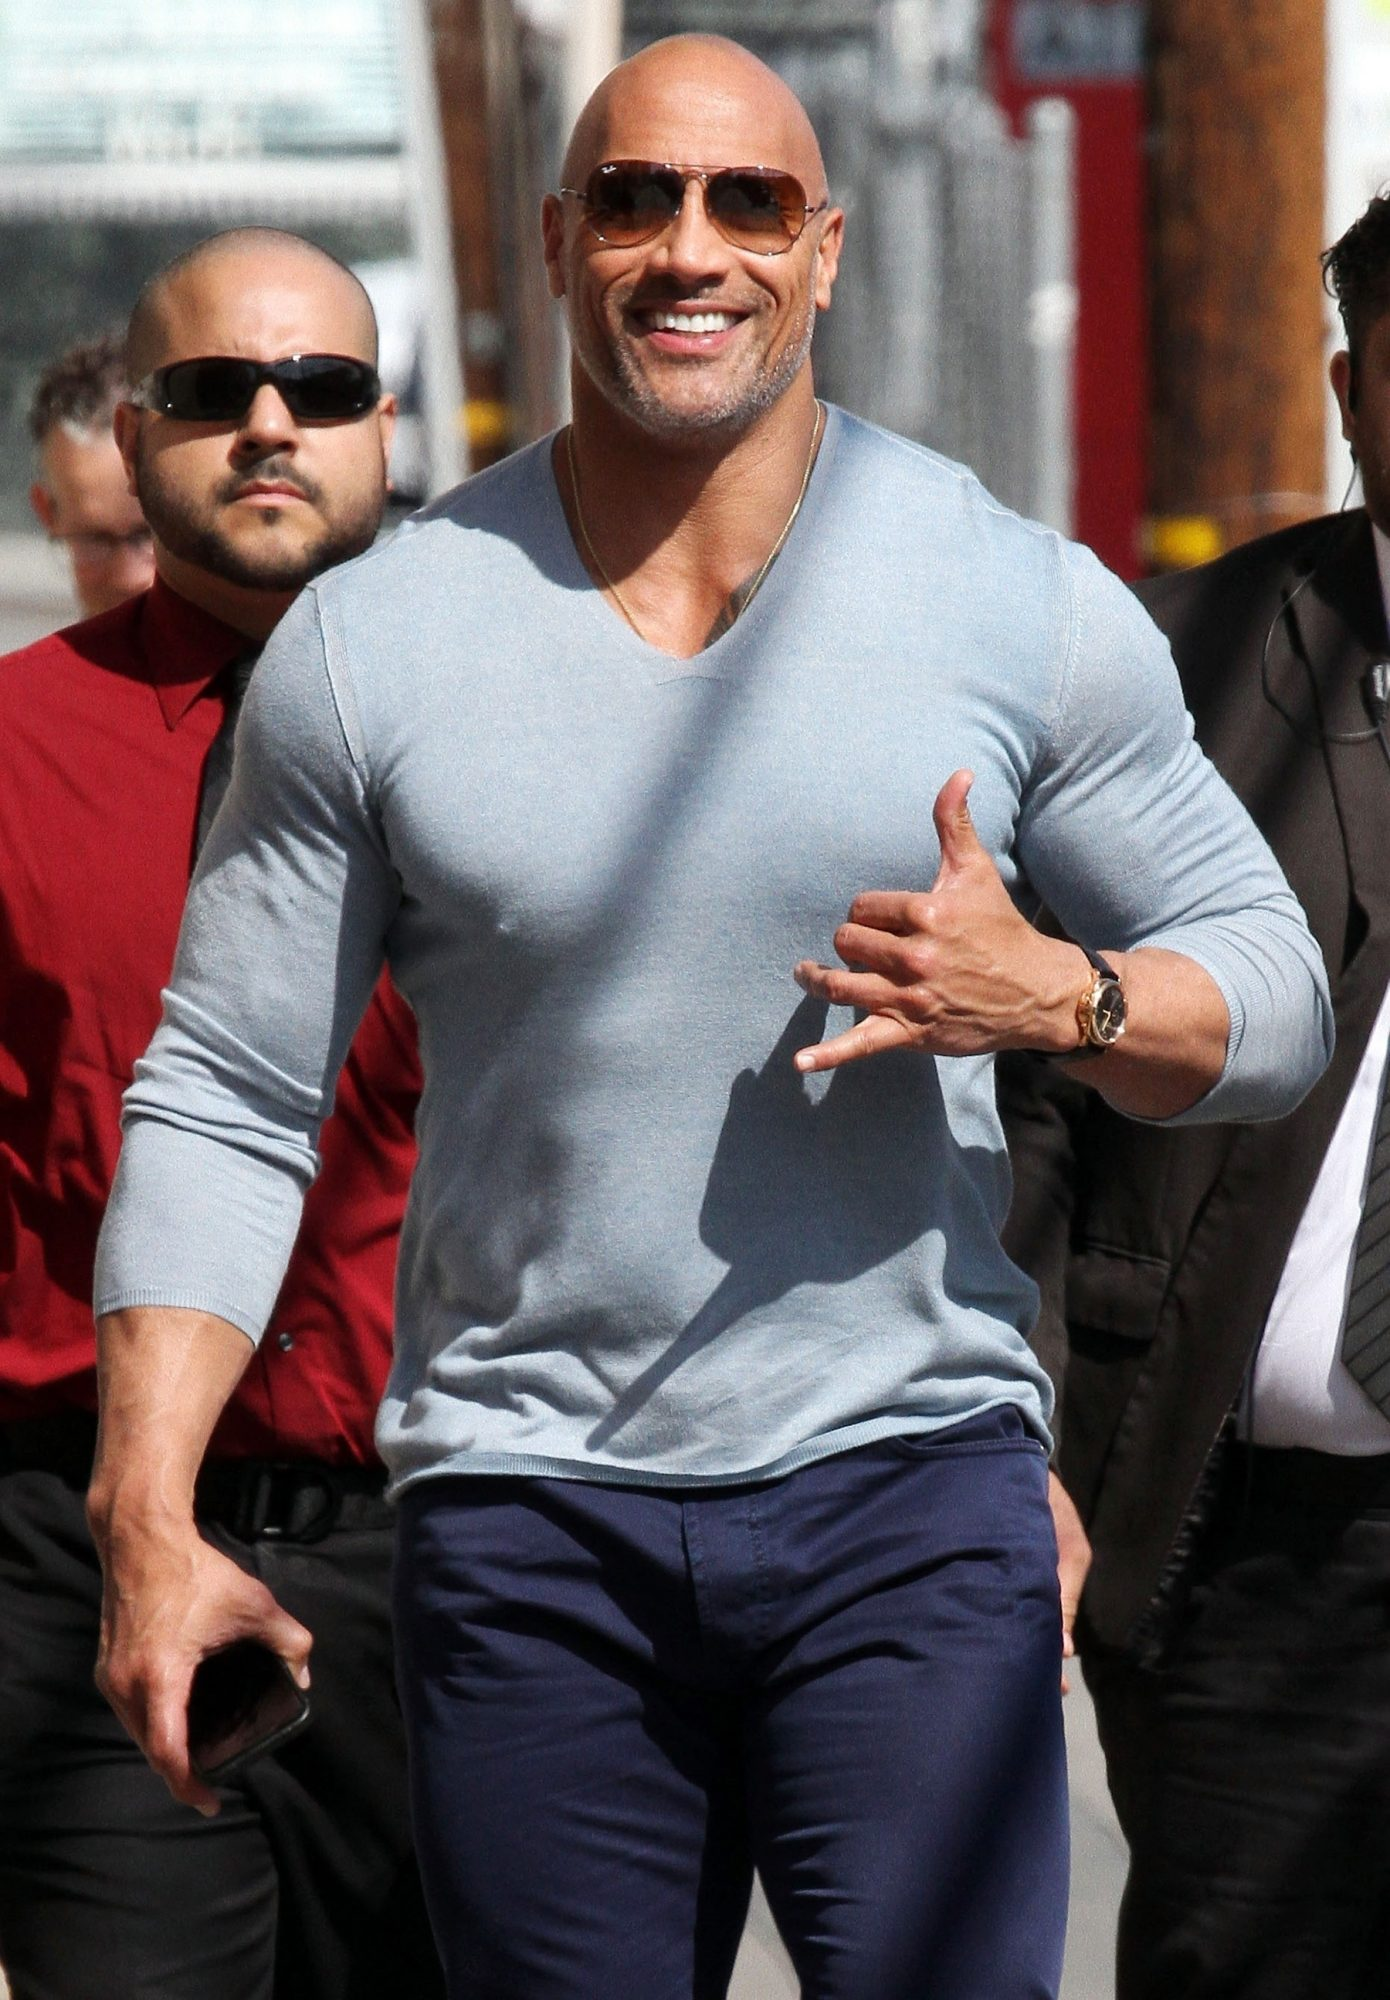 Dwayne Johnson heads into Jimmy Kimmel Live!